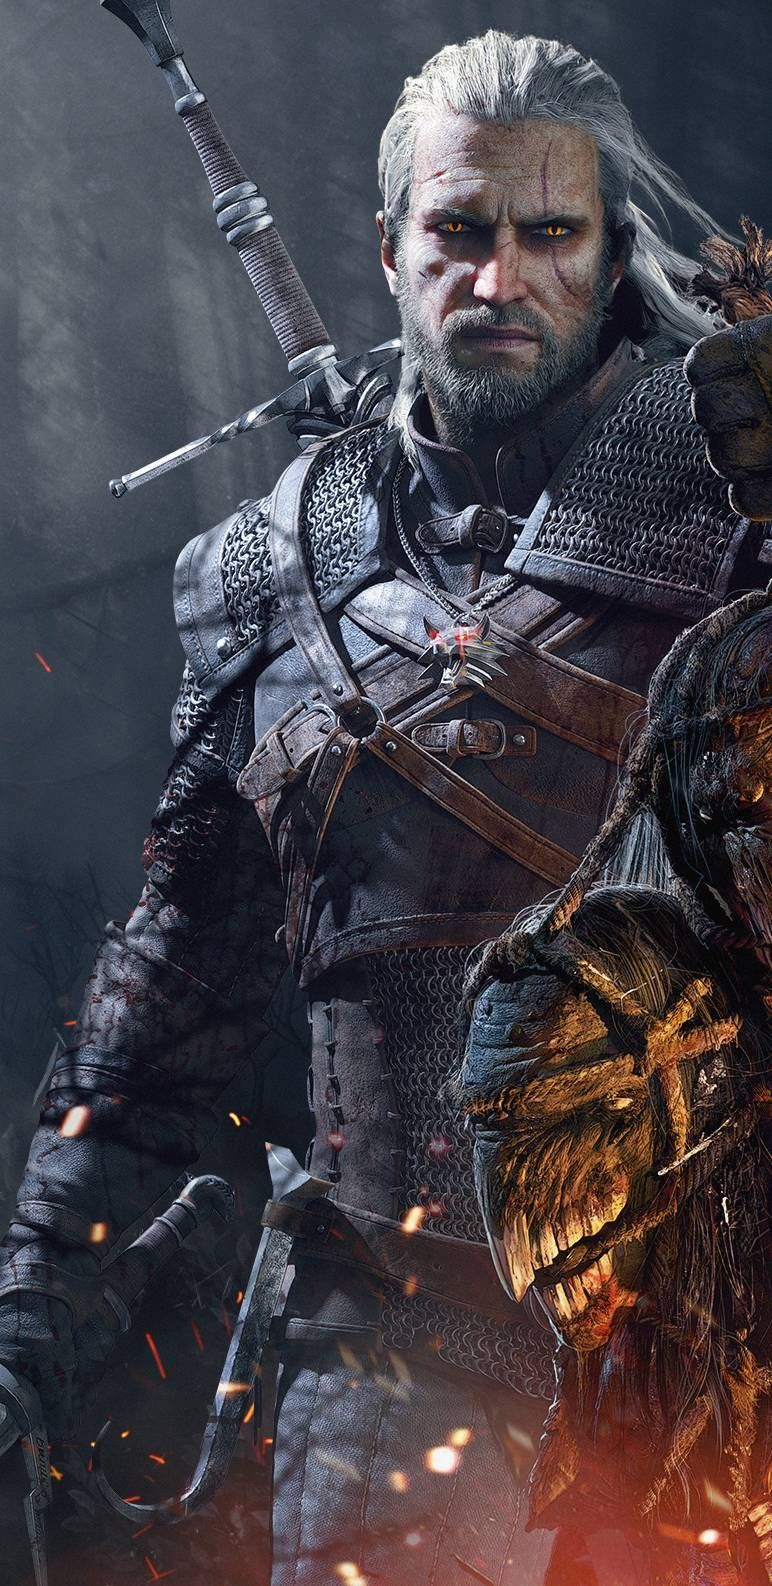 Geralt Of Rivia The Witcher Game The Witcher Wild Hunt The Witcher